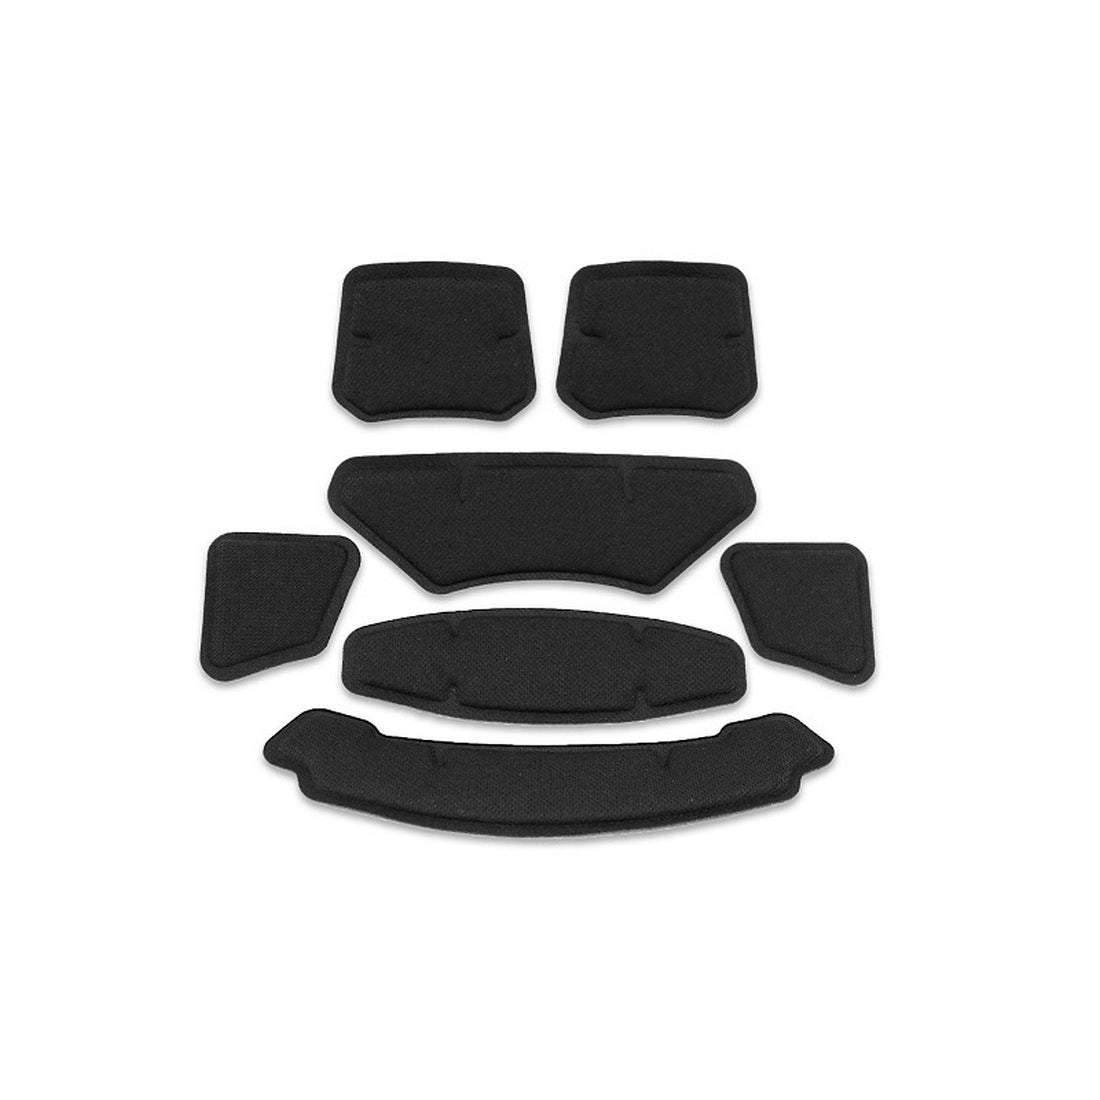 EPIC Air Helmet Liner Comfort Pad Replacement Set